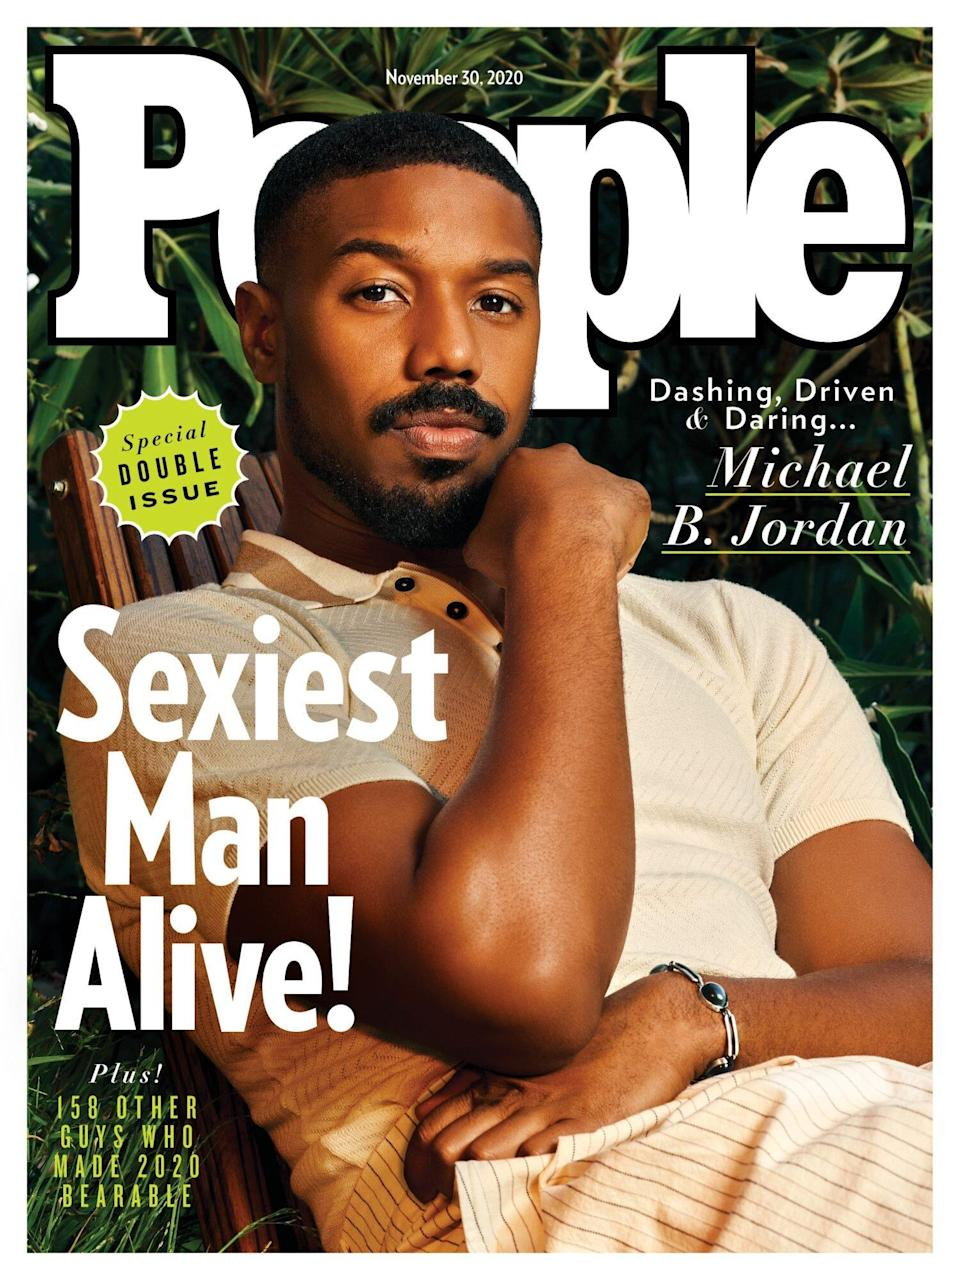 Sexiest Man Alive Michael B. Jordan Hopes to Have a Legacy Like Kobe Bryant and Chadwick Boseman